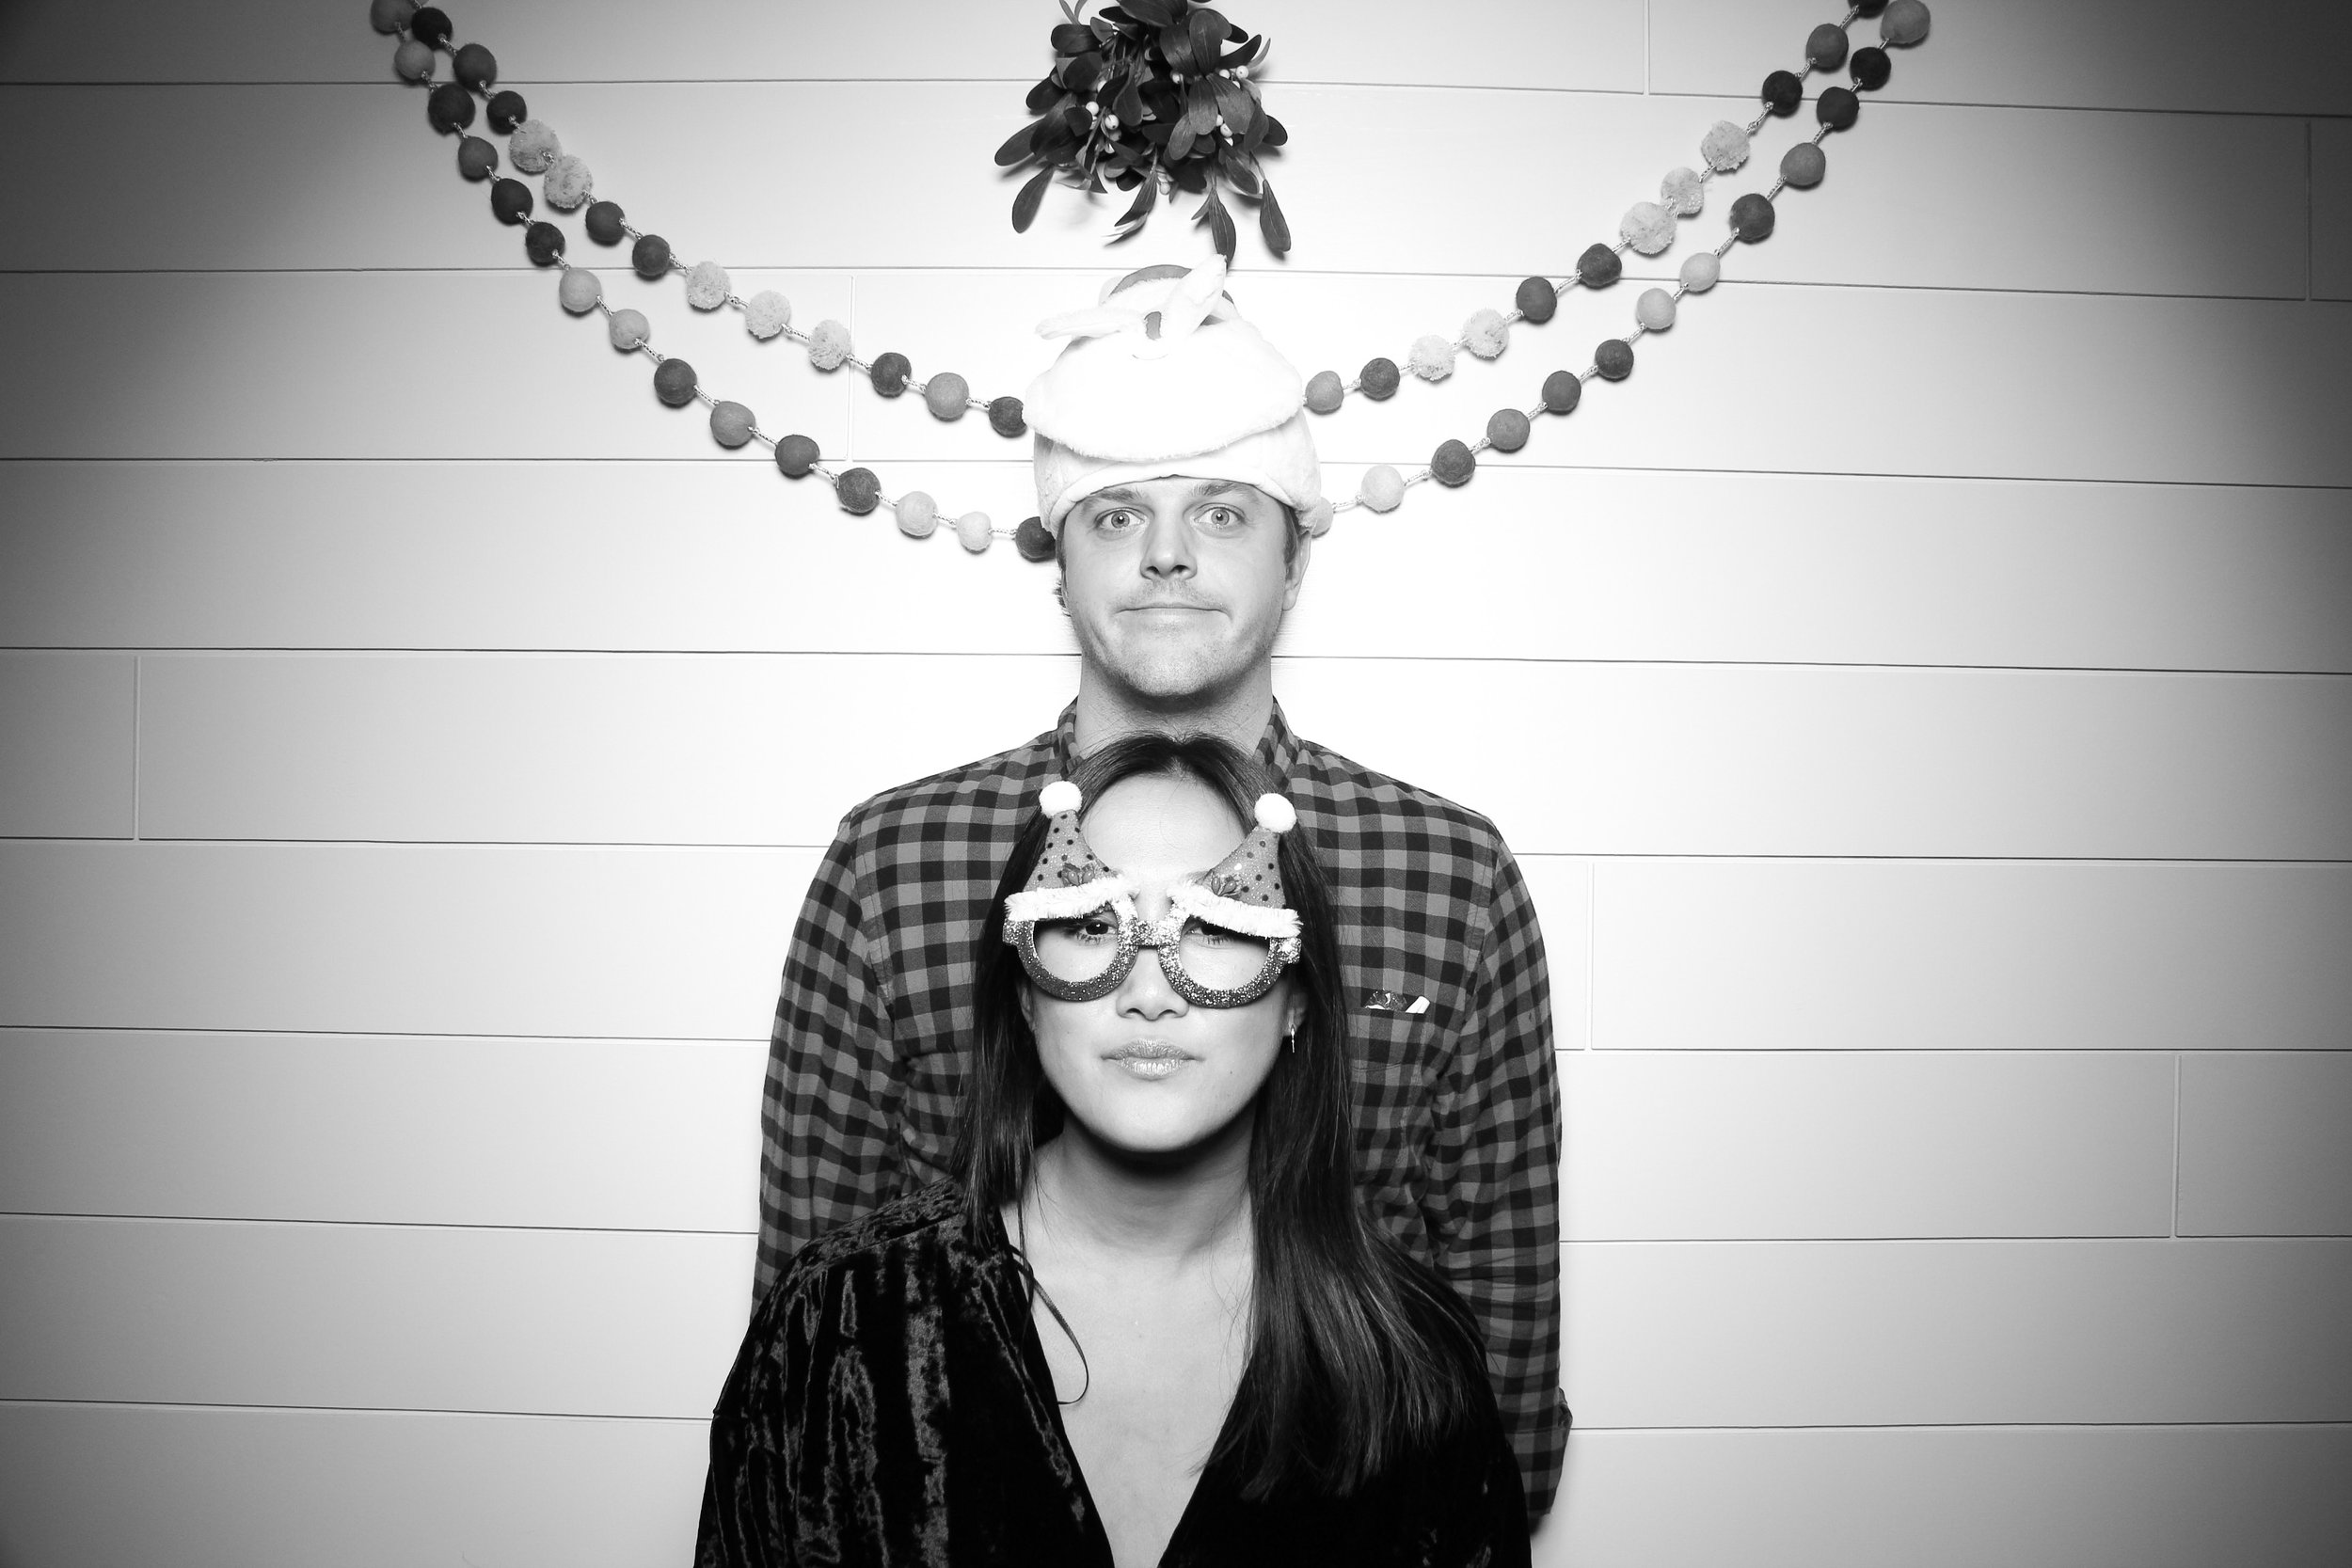 Chicago_Vintage_Photobooth_Christmas_Holiday_Party_12.jpg